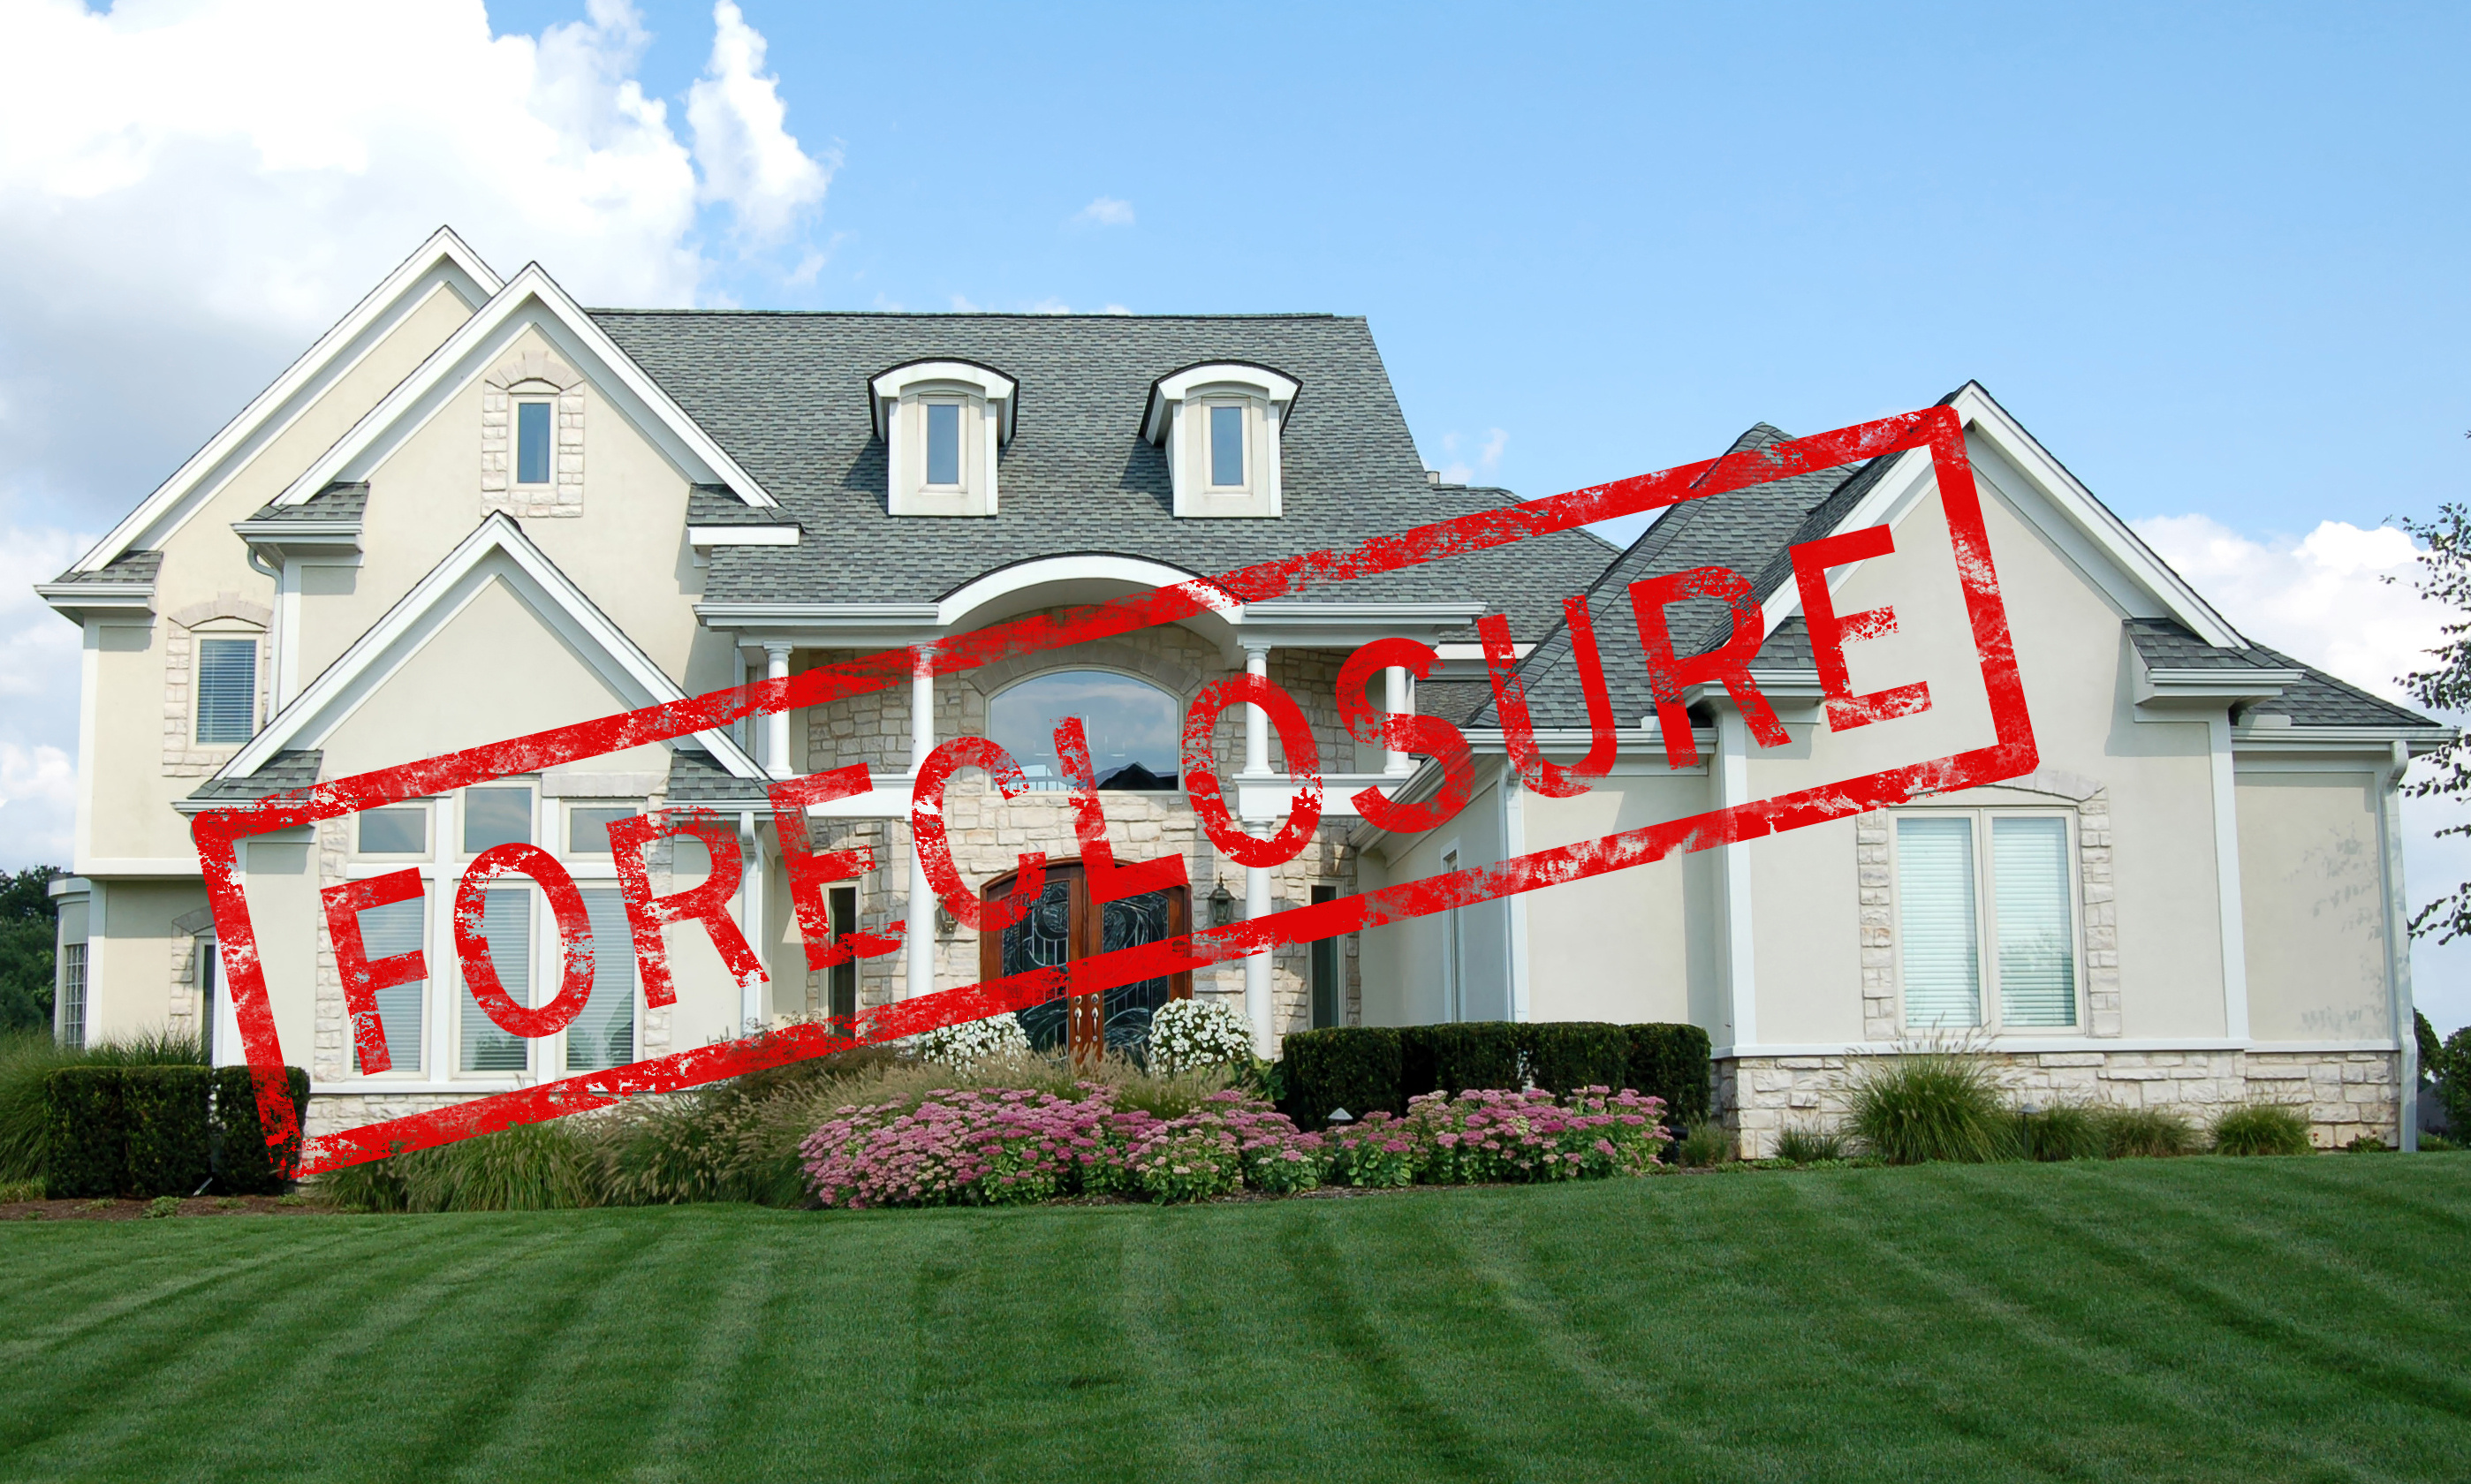 Call Appraisal Group One when you need valuations regarding Hillsborough foreclosures